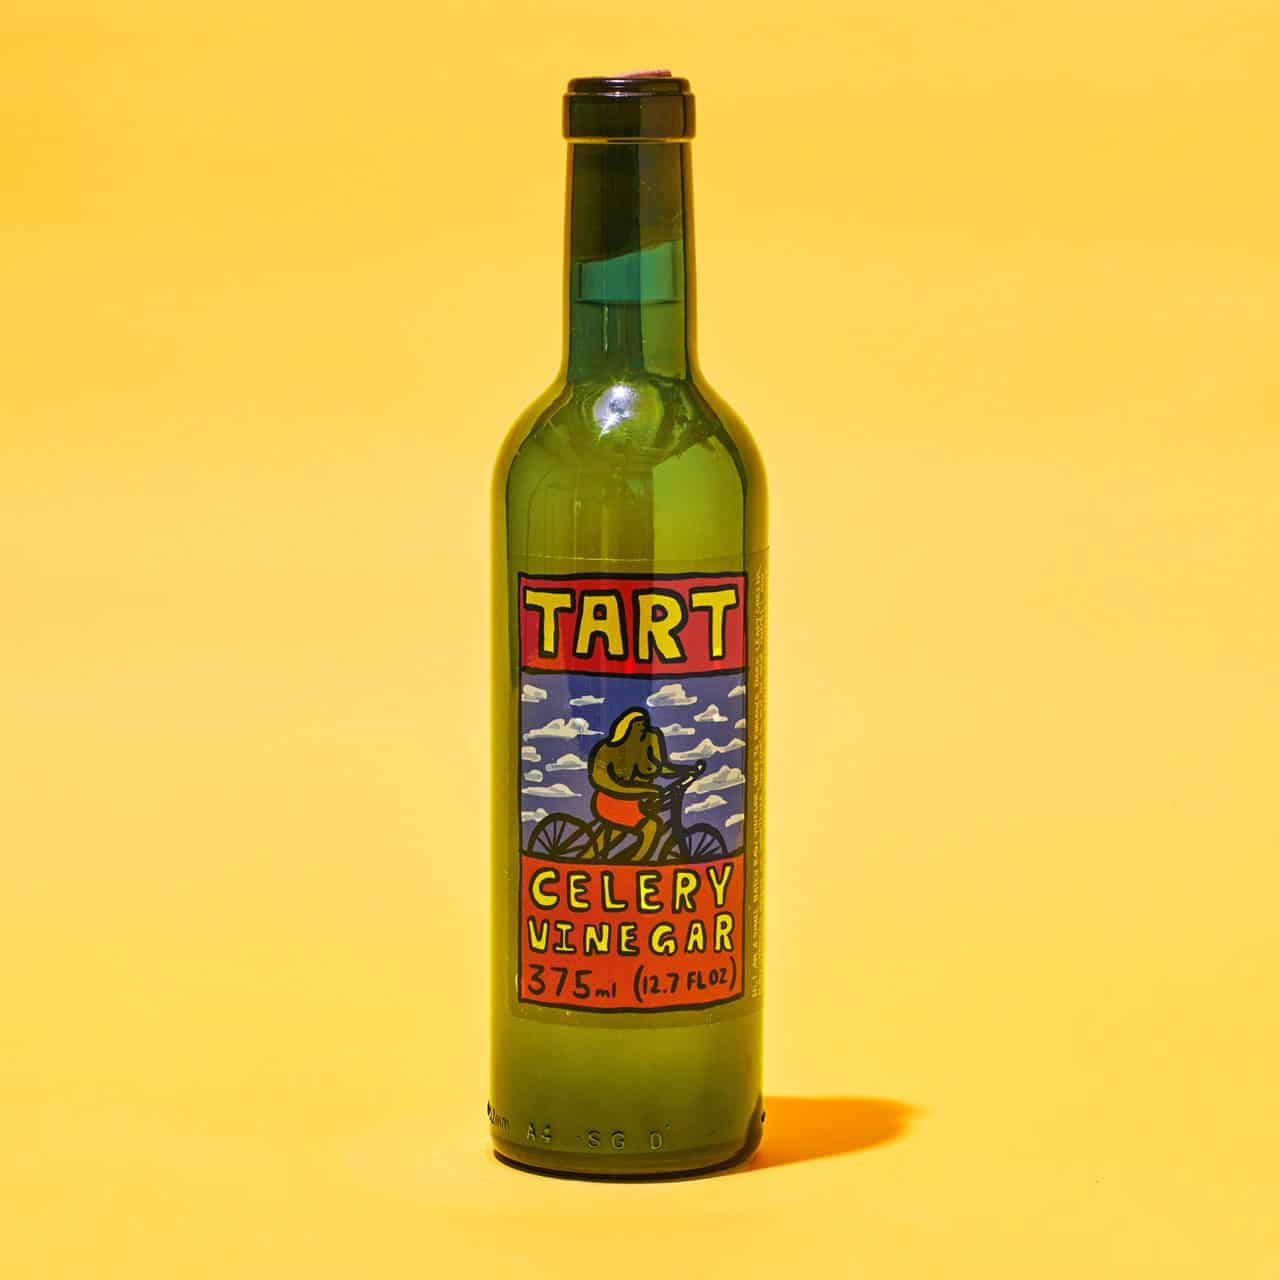 moving through acv, there's a new vinegar in town